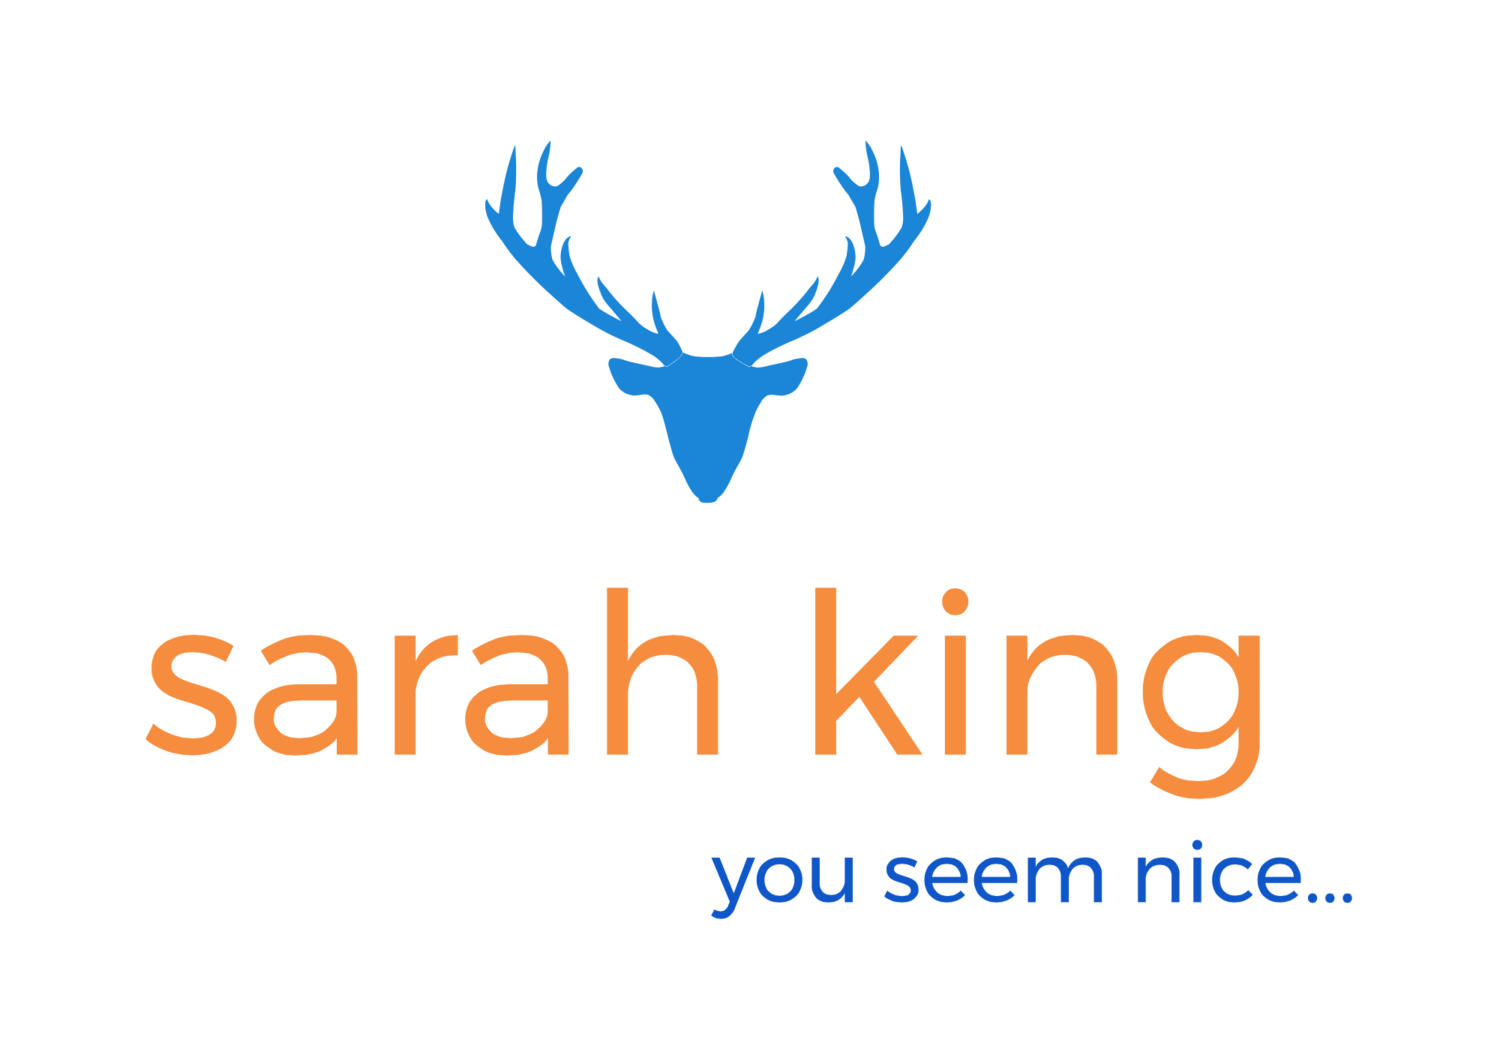 welcometosarahking